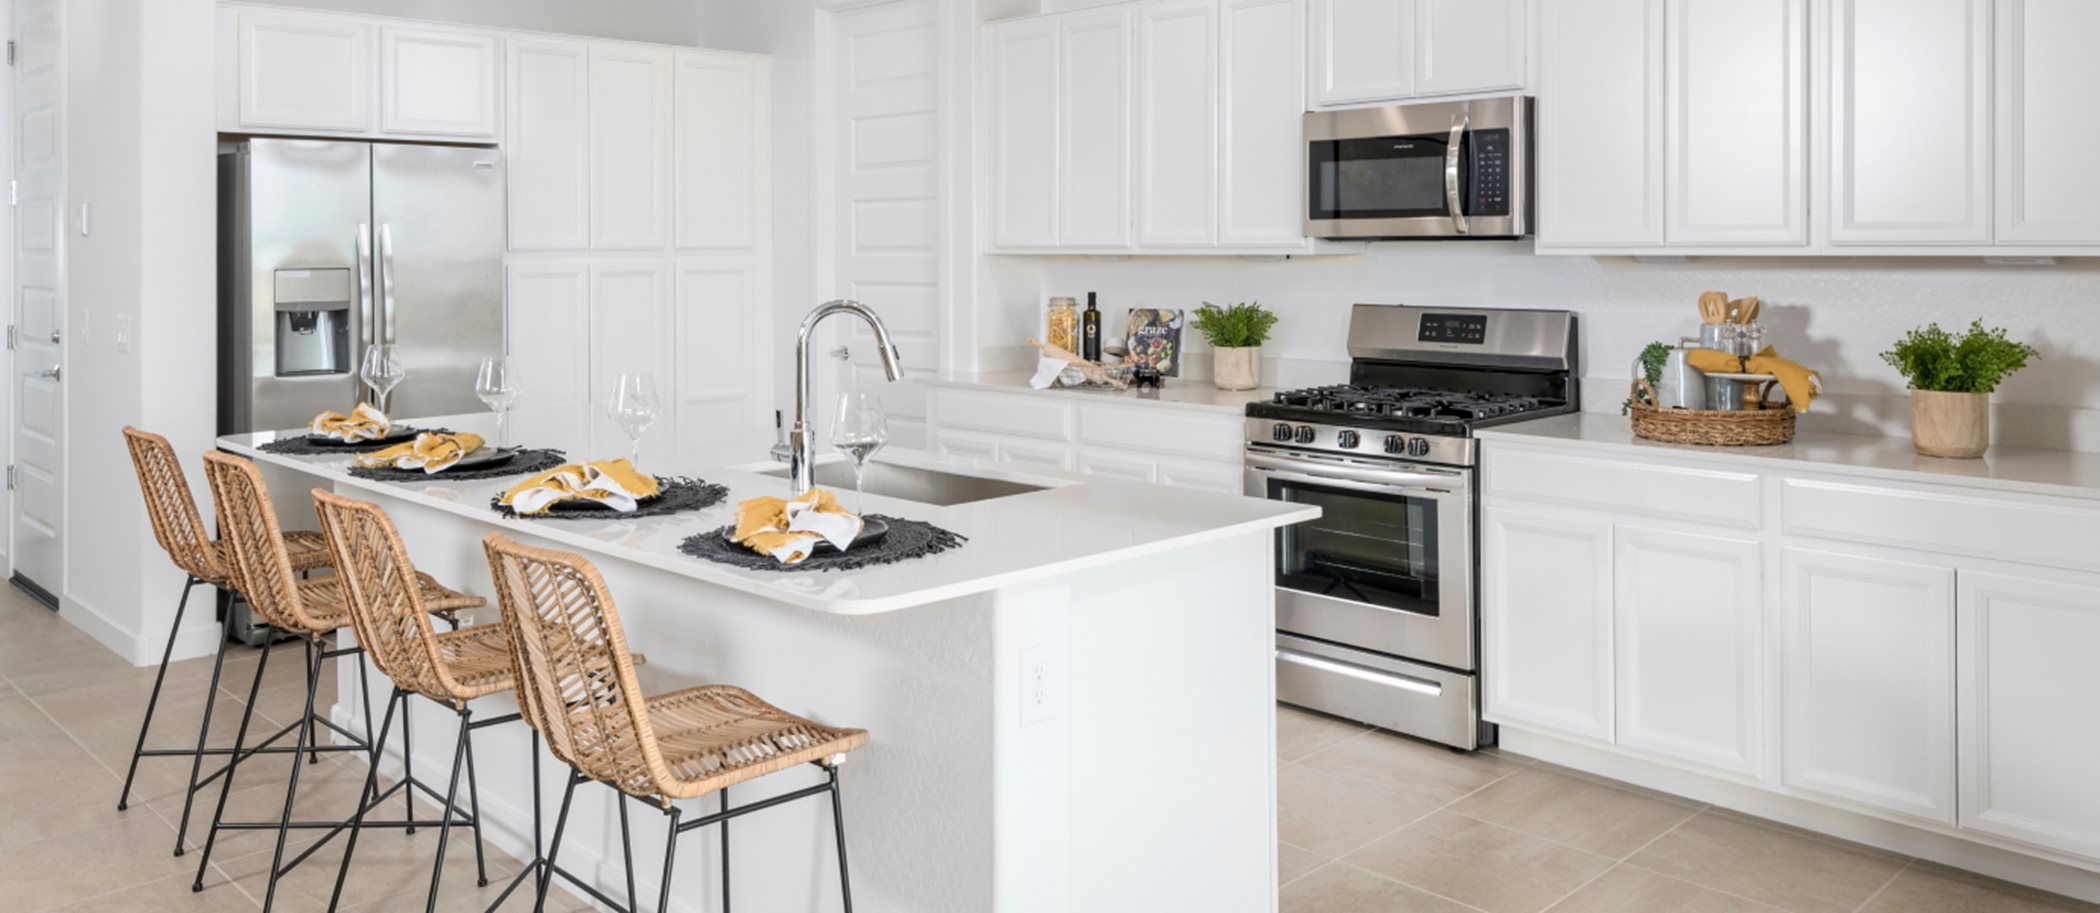 Asante Heritage Inspiration Armstrong 4066 Kitchen